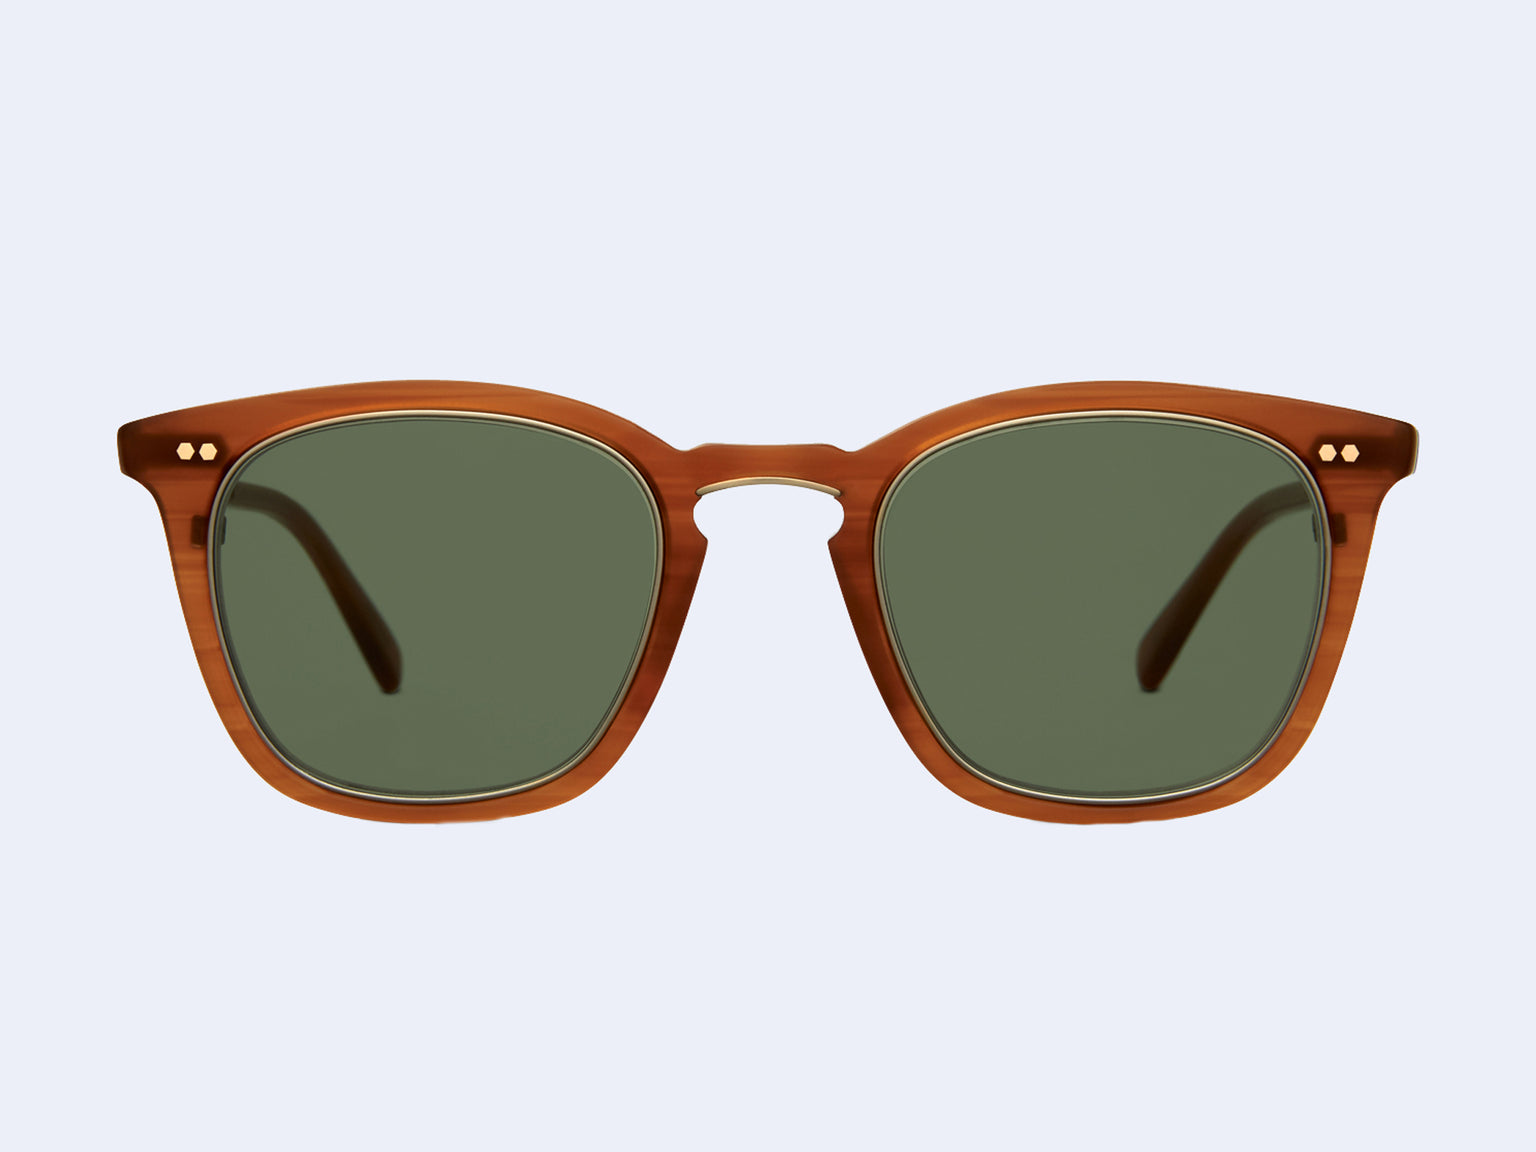 Mr Leight Getty S (Matte Caramel Tortoise-12K Matte White Gold with Semi-Flat Green Lens)